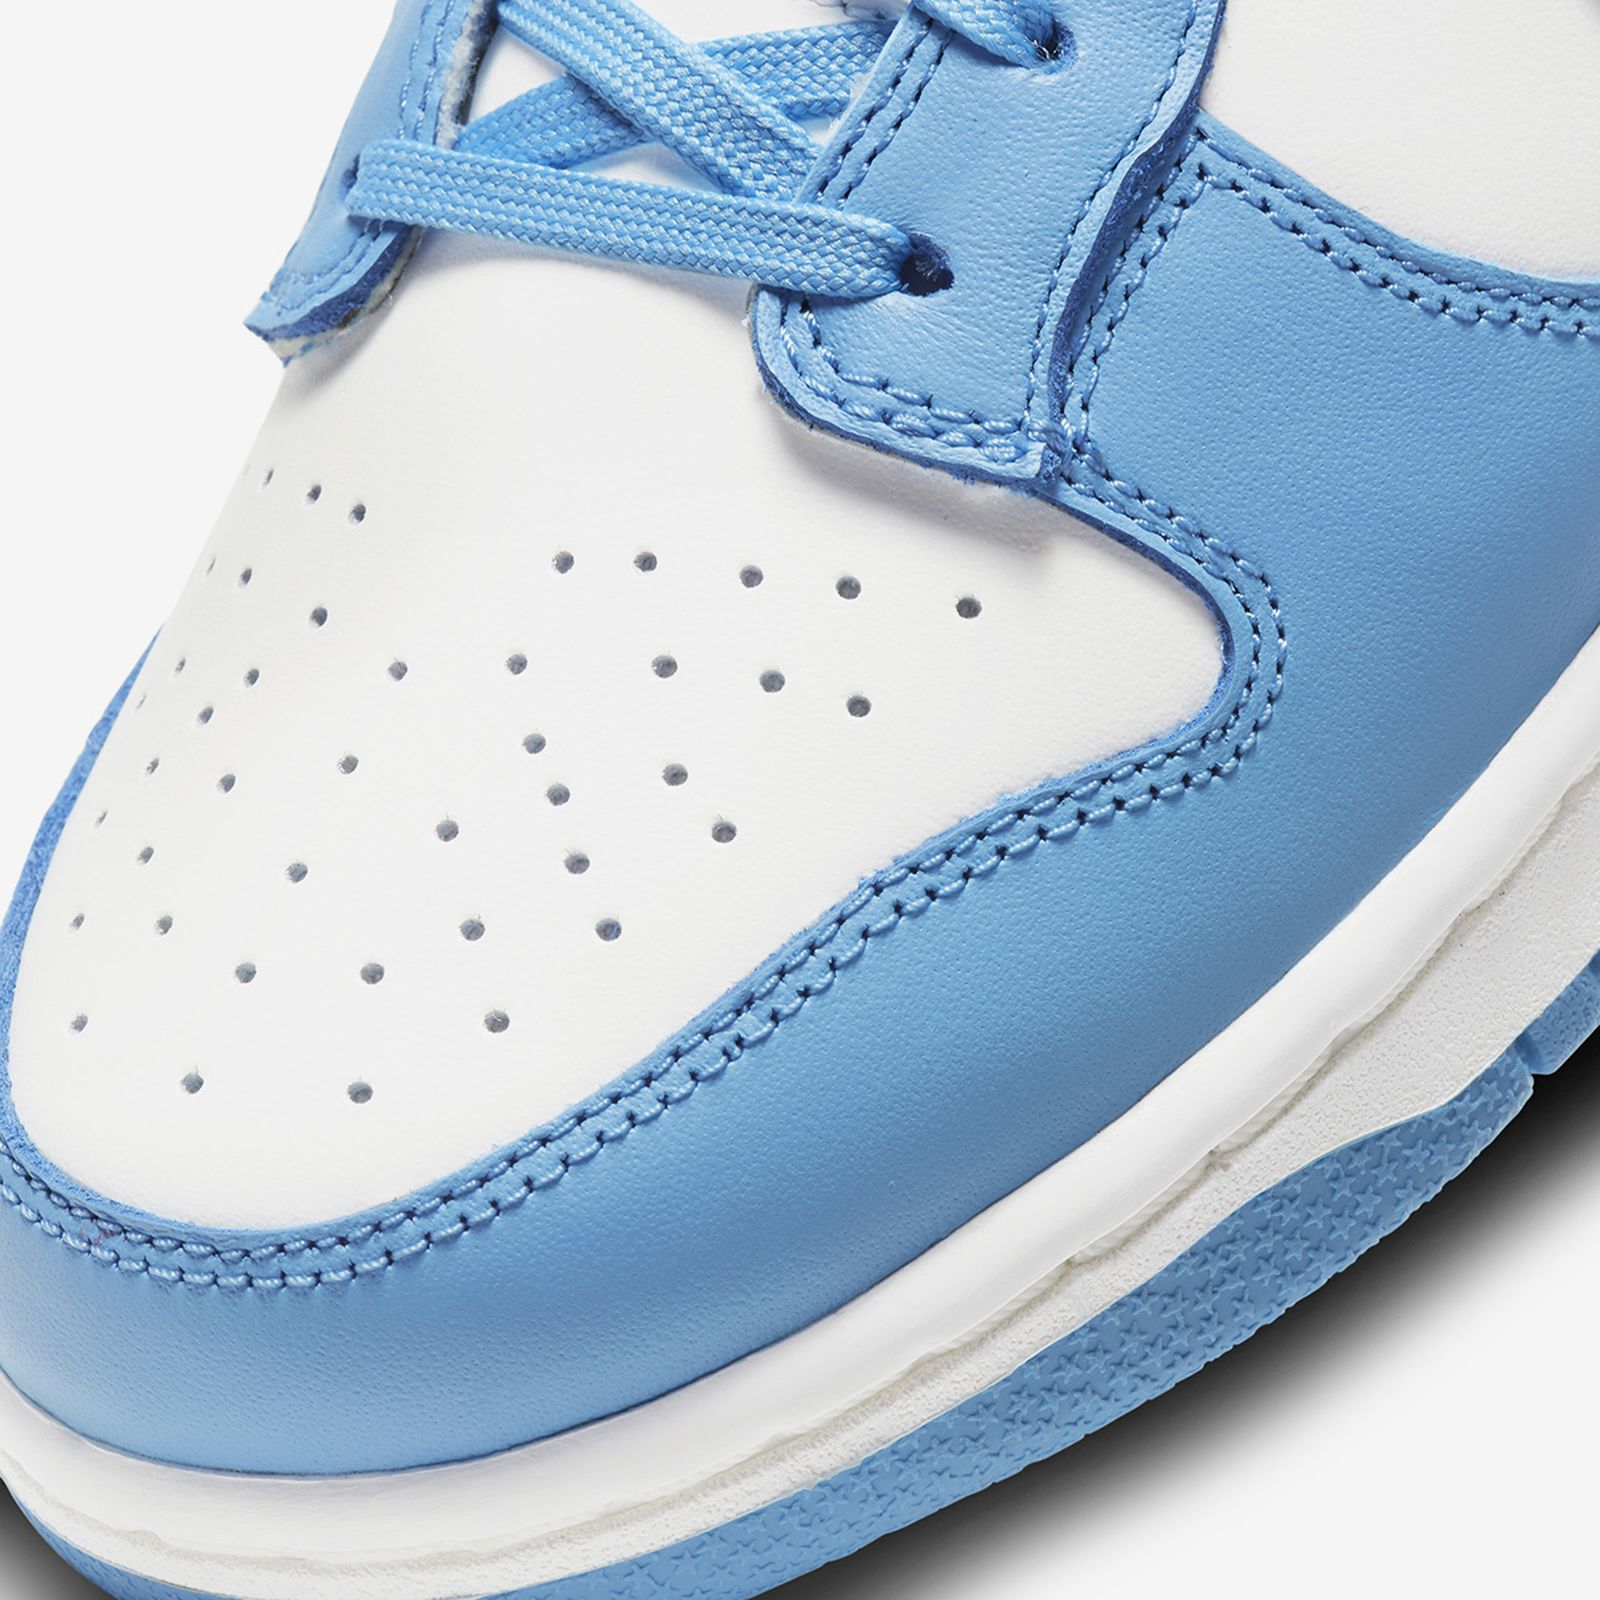 nike-dunk-spring-2021-release-date-price-1-04